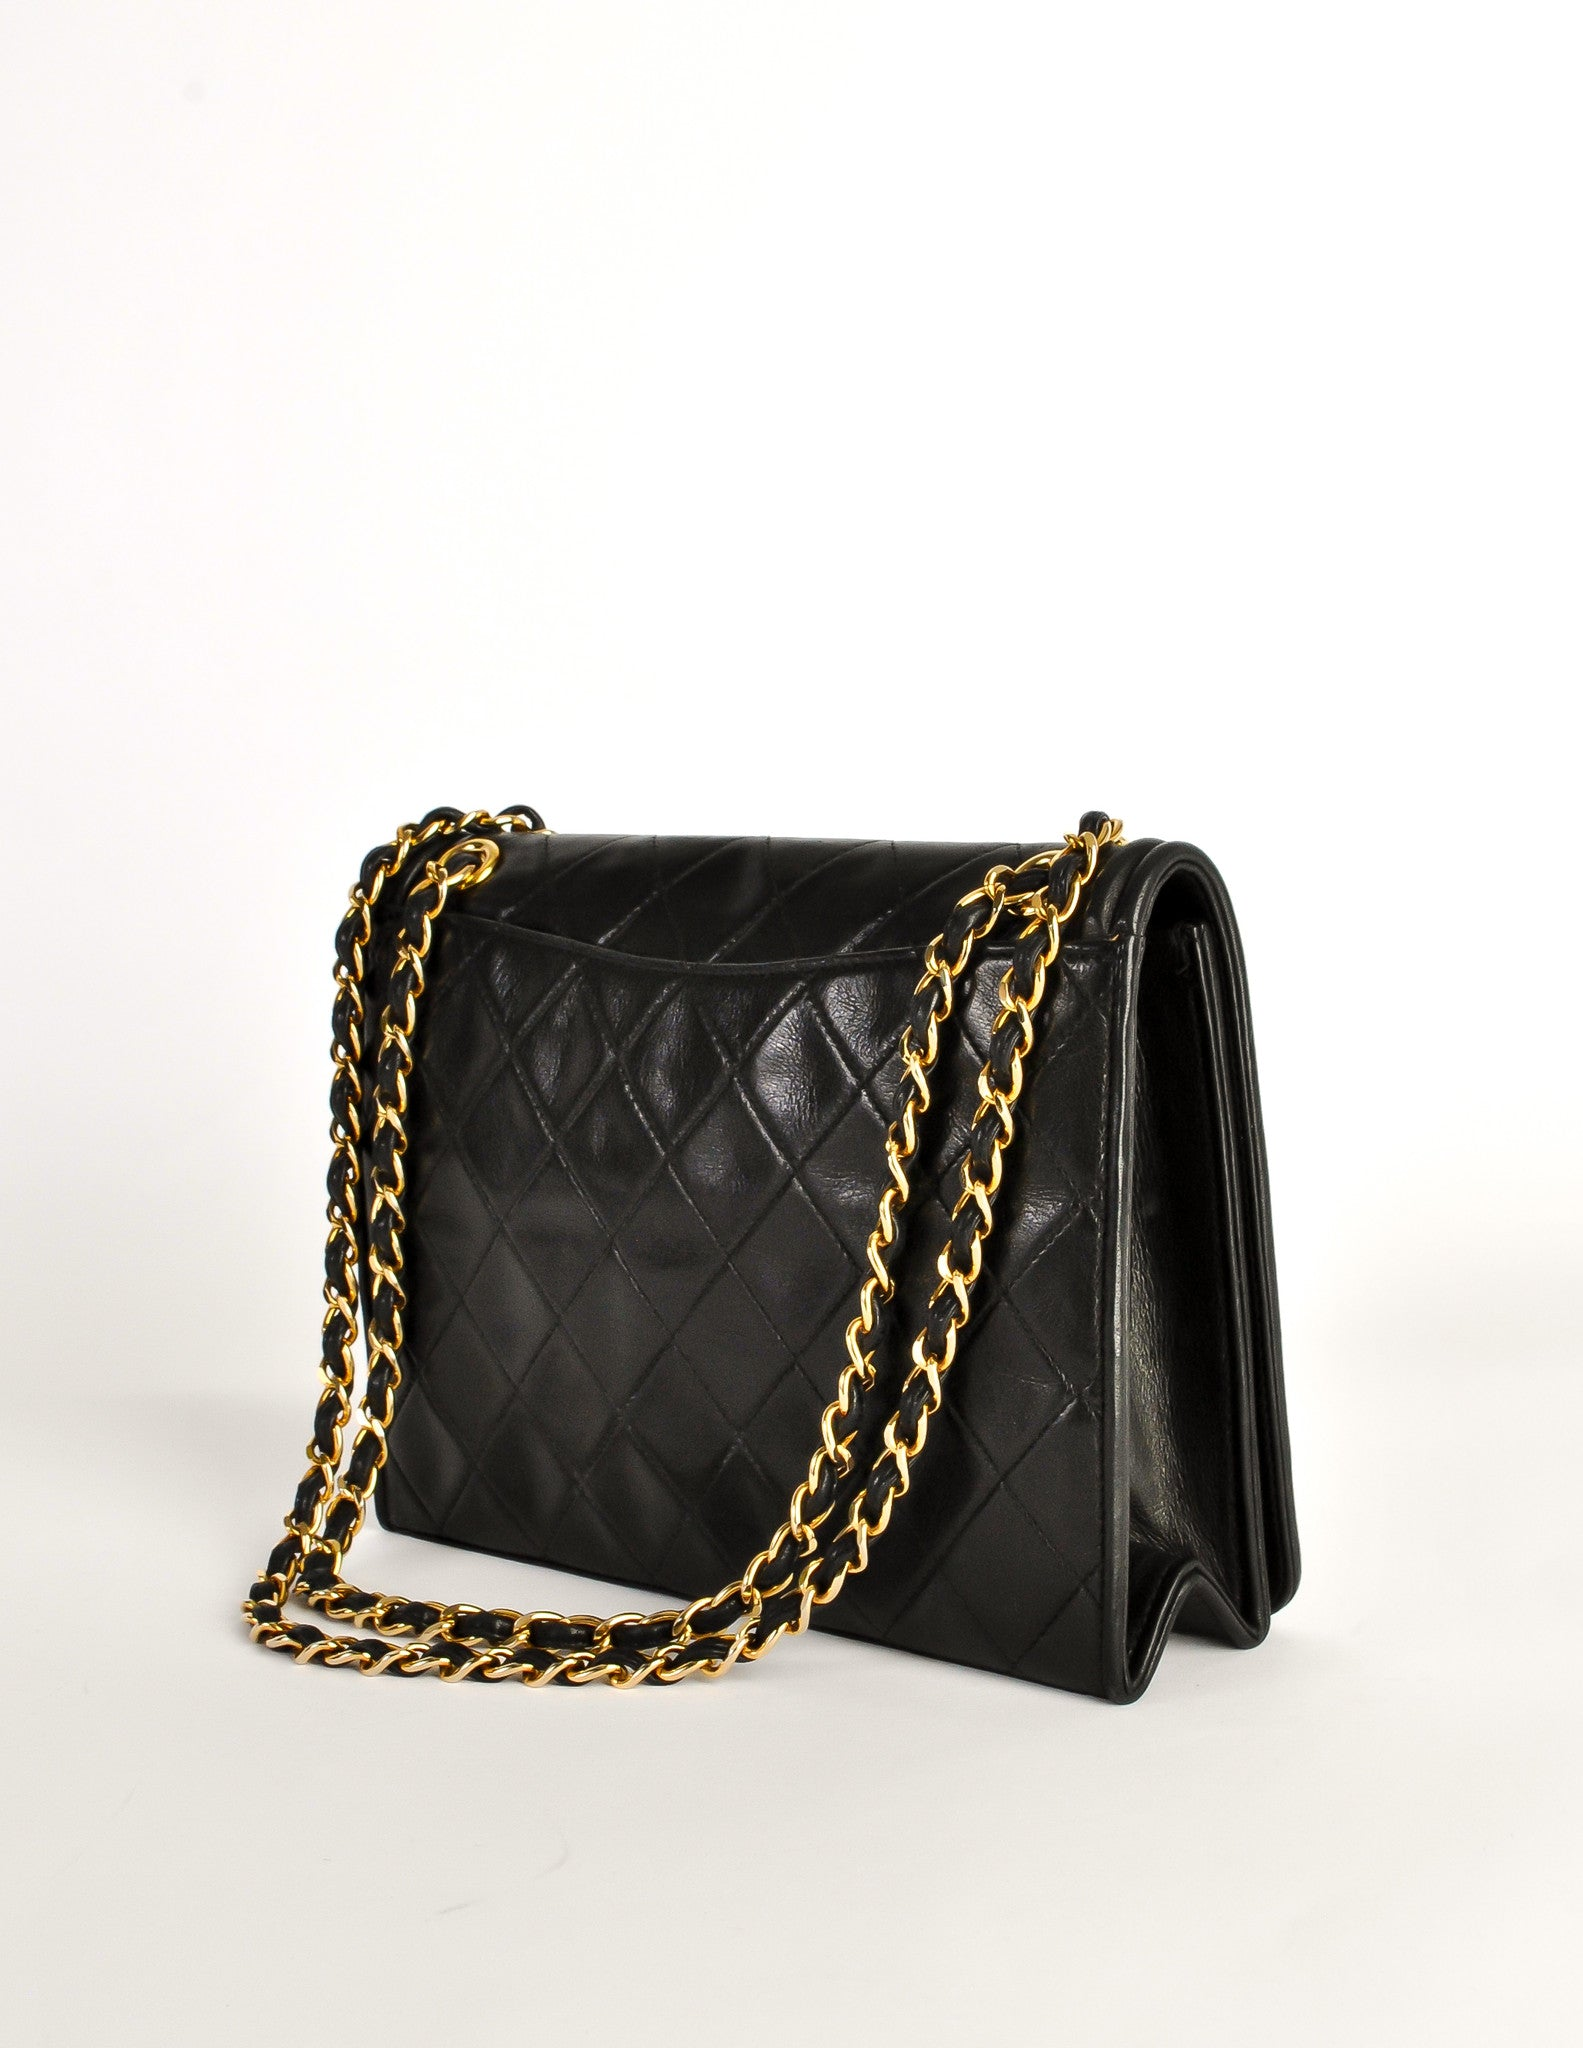 5d11c33f6cecd7 Chanel Vintage Black Lambskin Leather Quilted CC Logo Bag - Amarcord Vintage  Fashion - 5